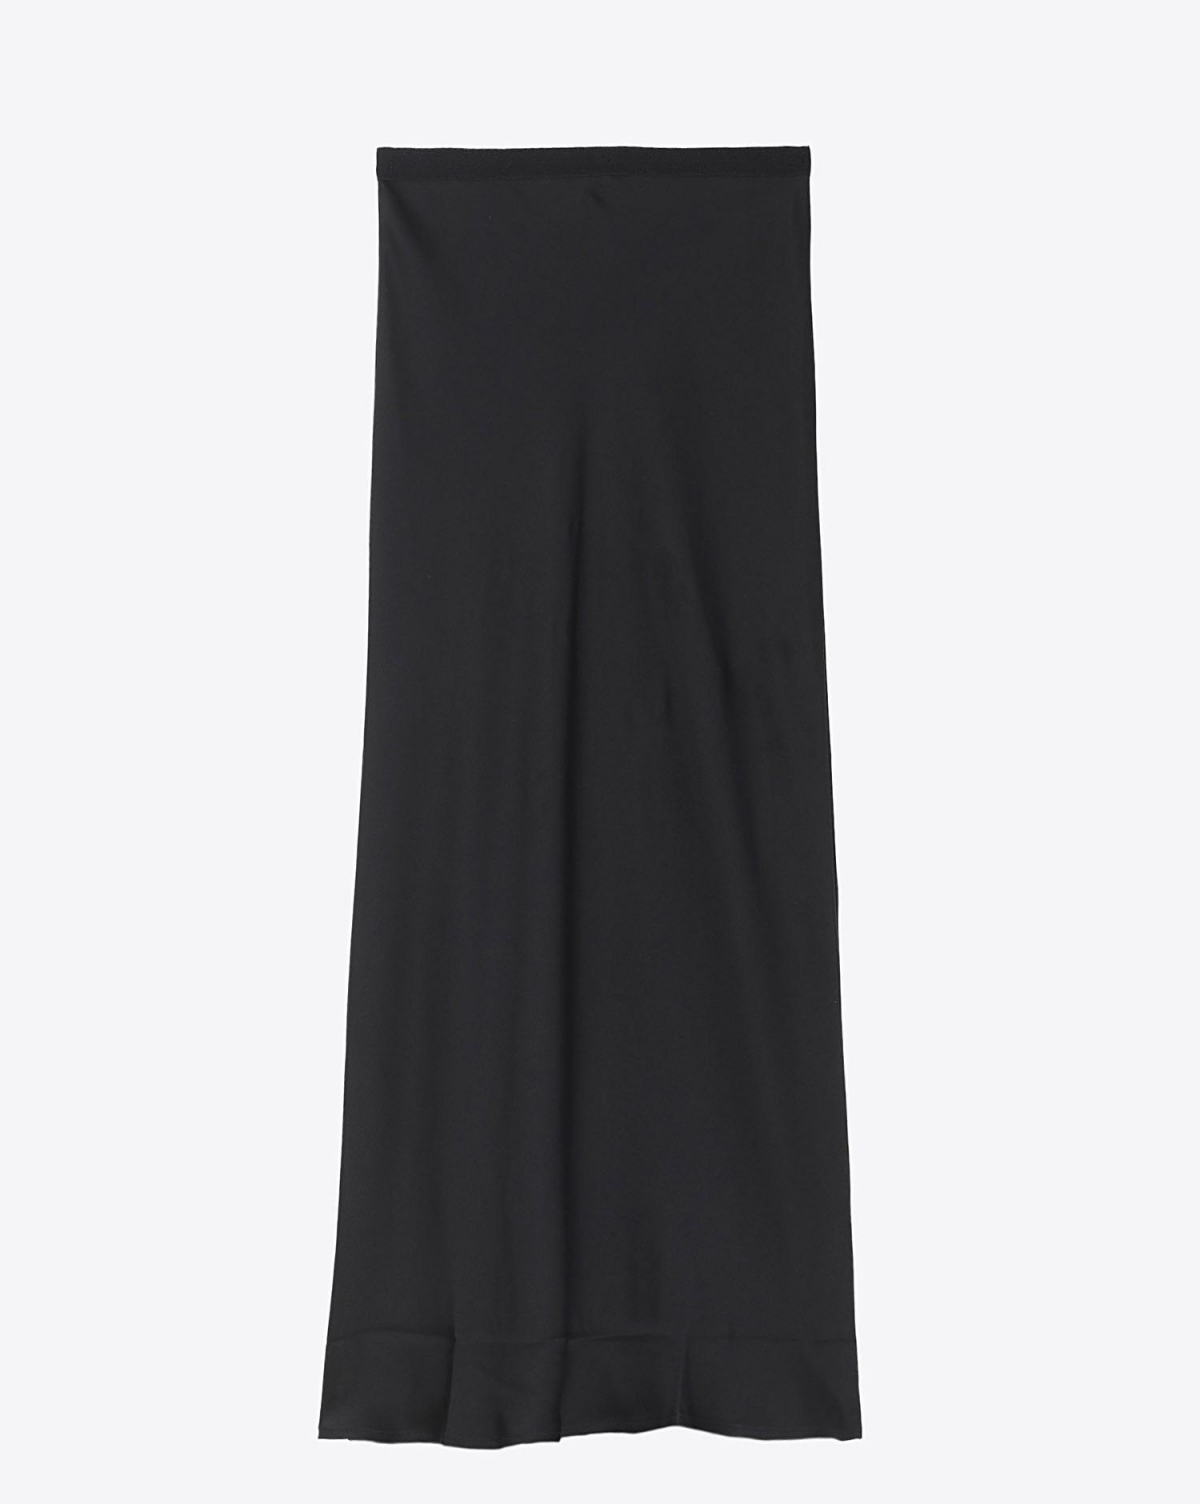 Anine Bing Permanent Bar Silk Skirt - Black